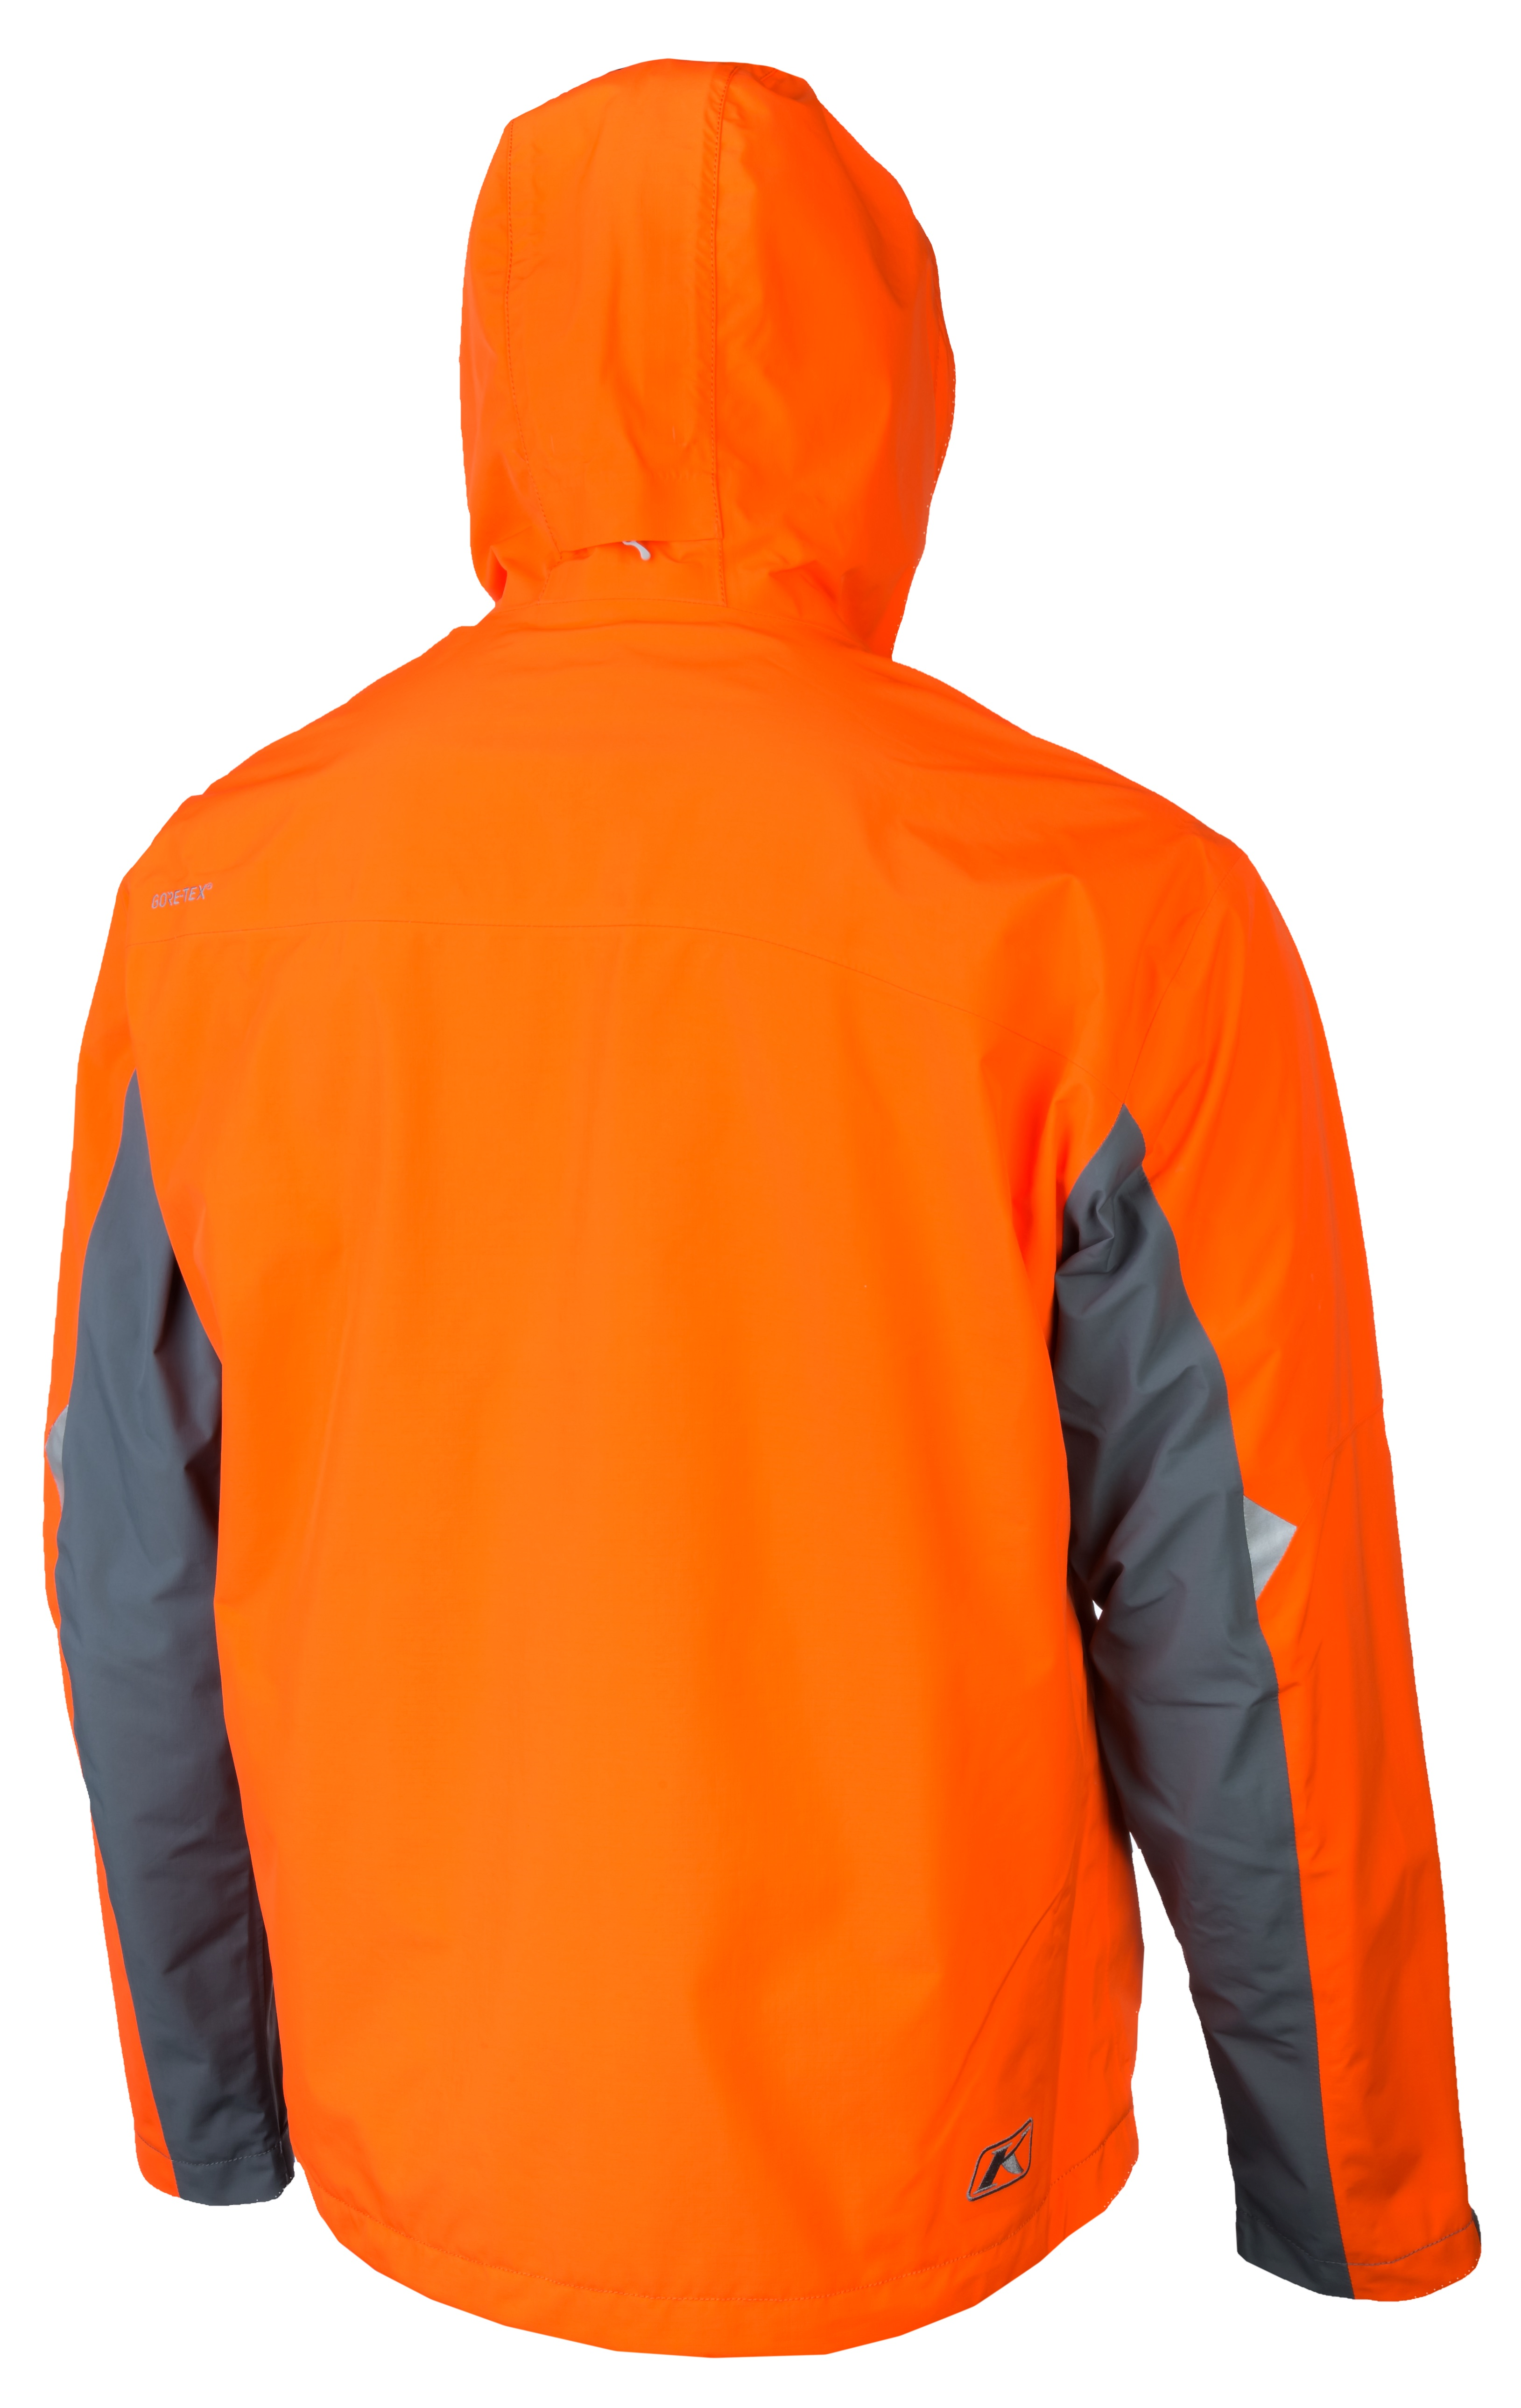 Stow Away Jacket 3148-003_Orange_02